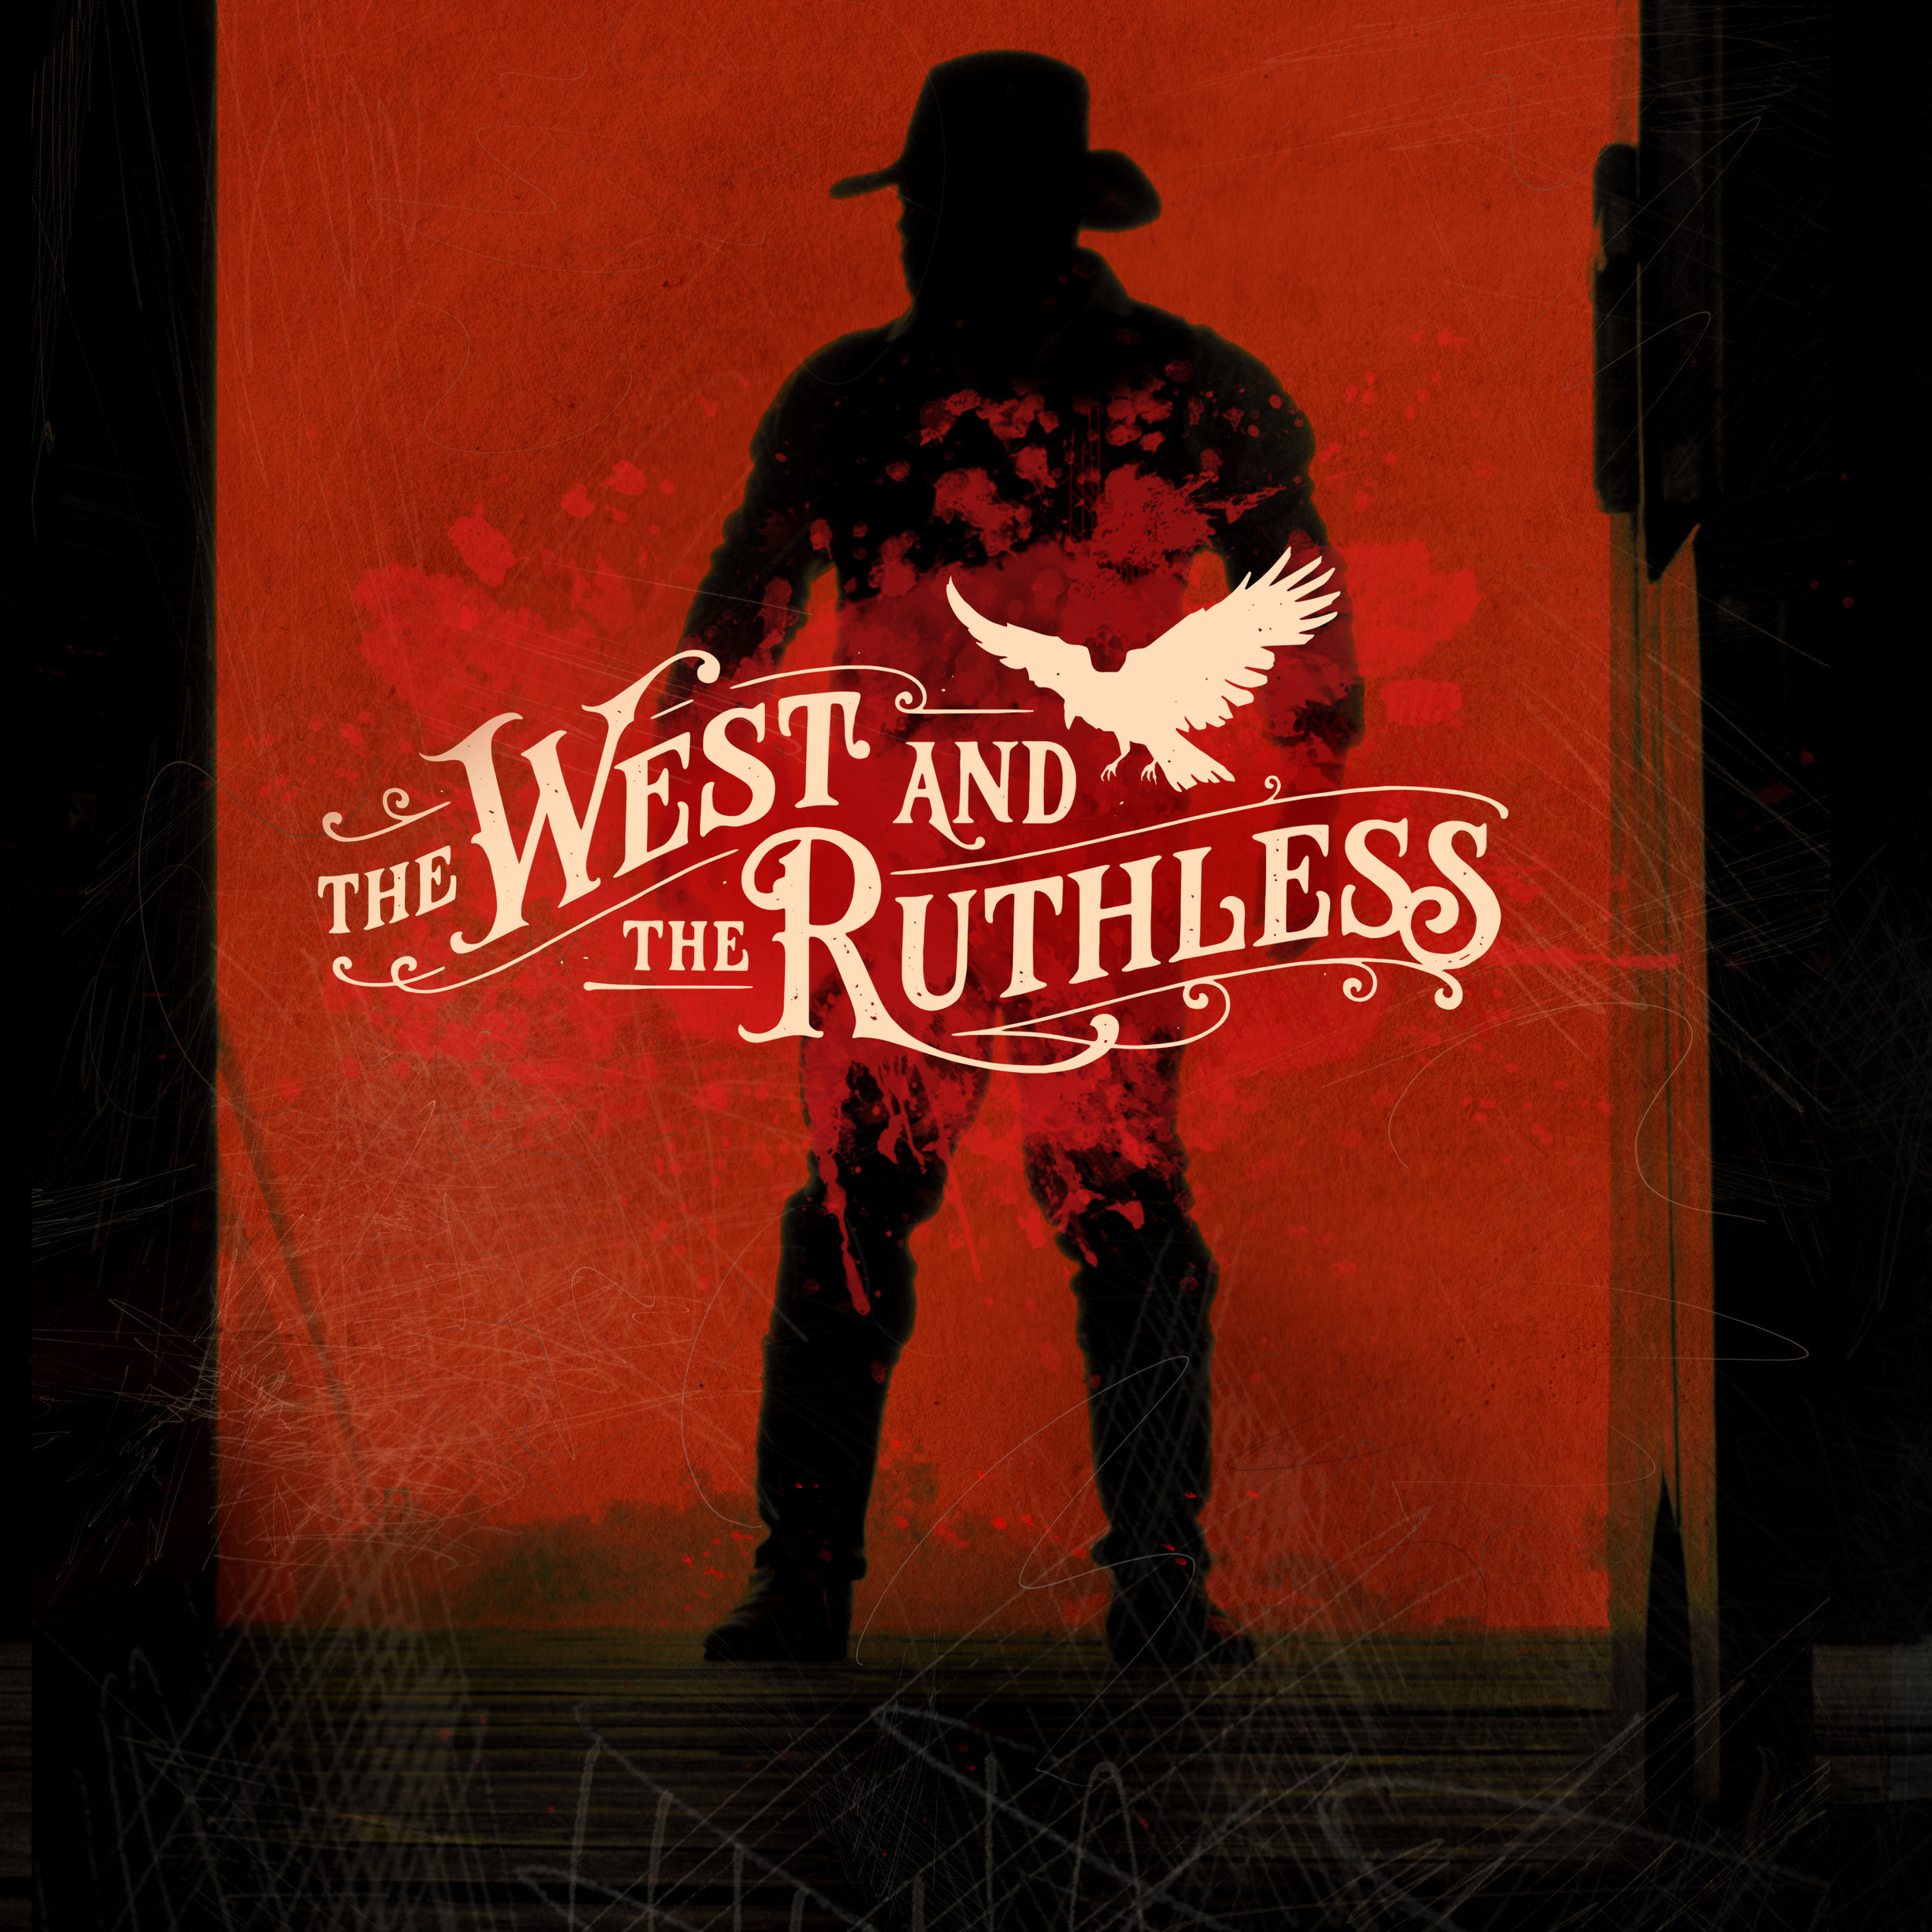 West and the Ruthless Square.jpg